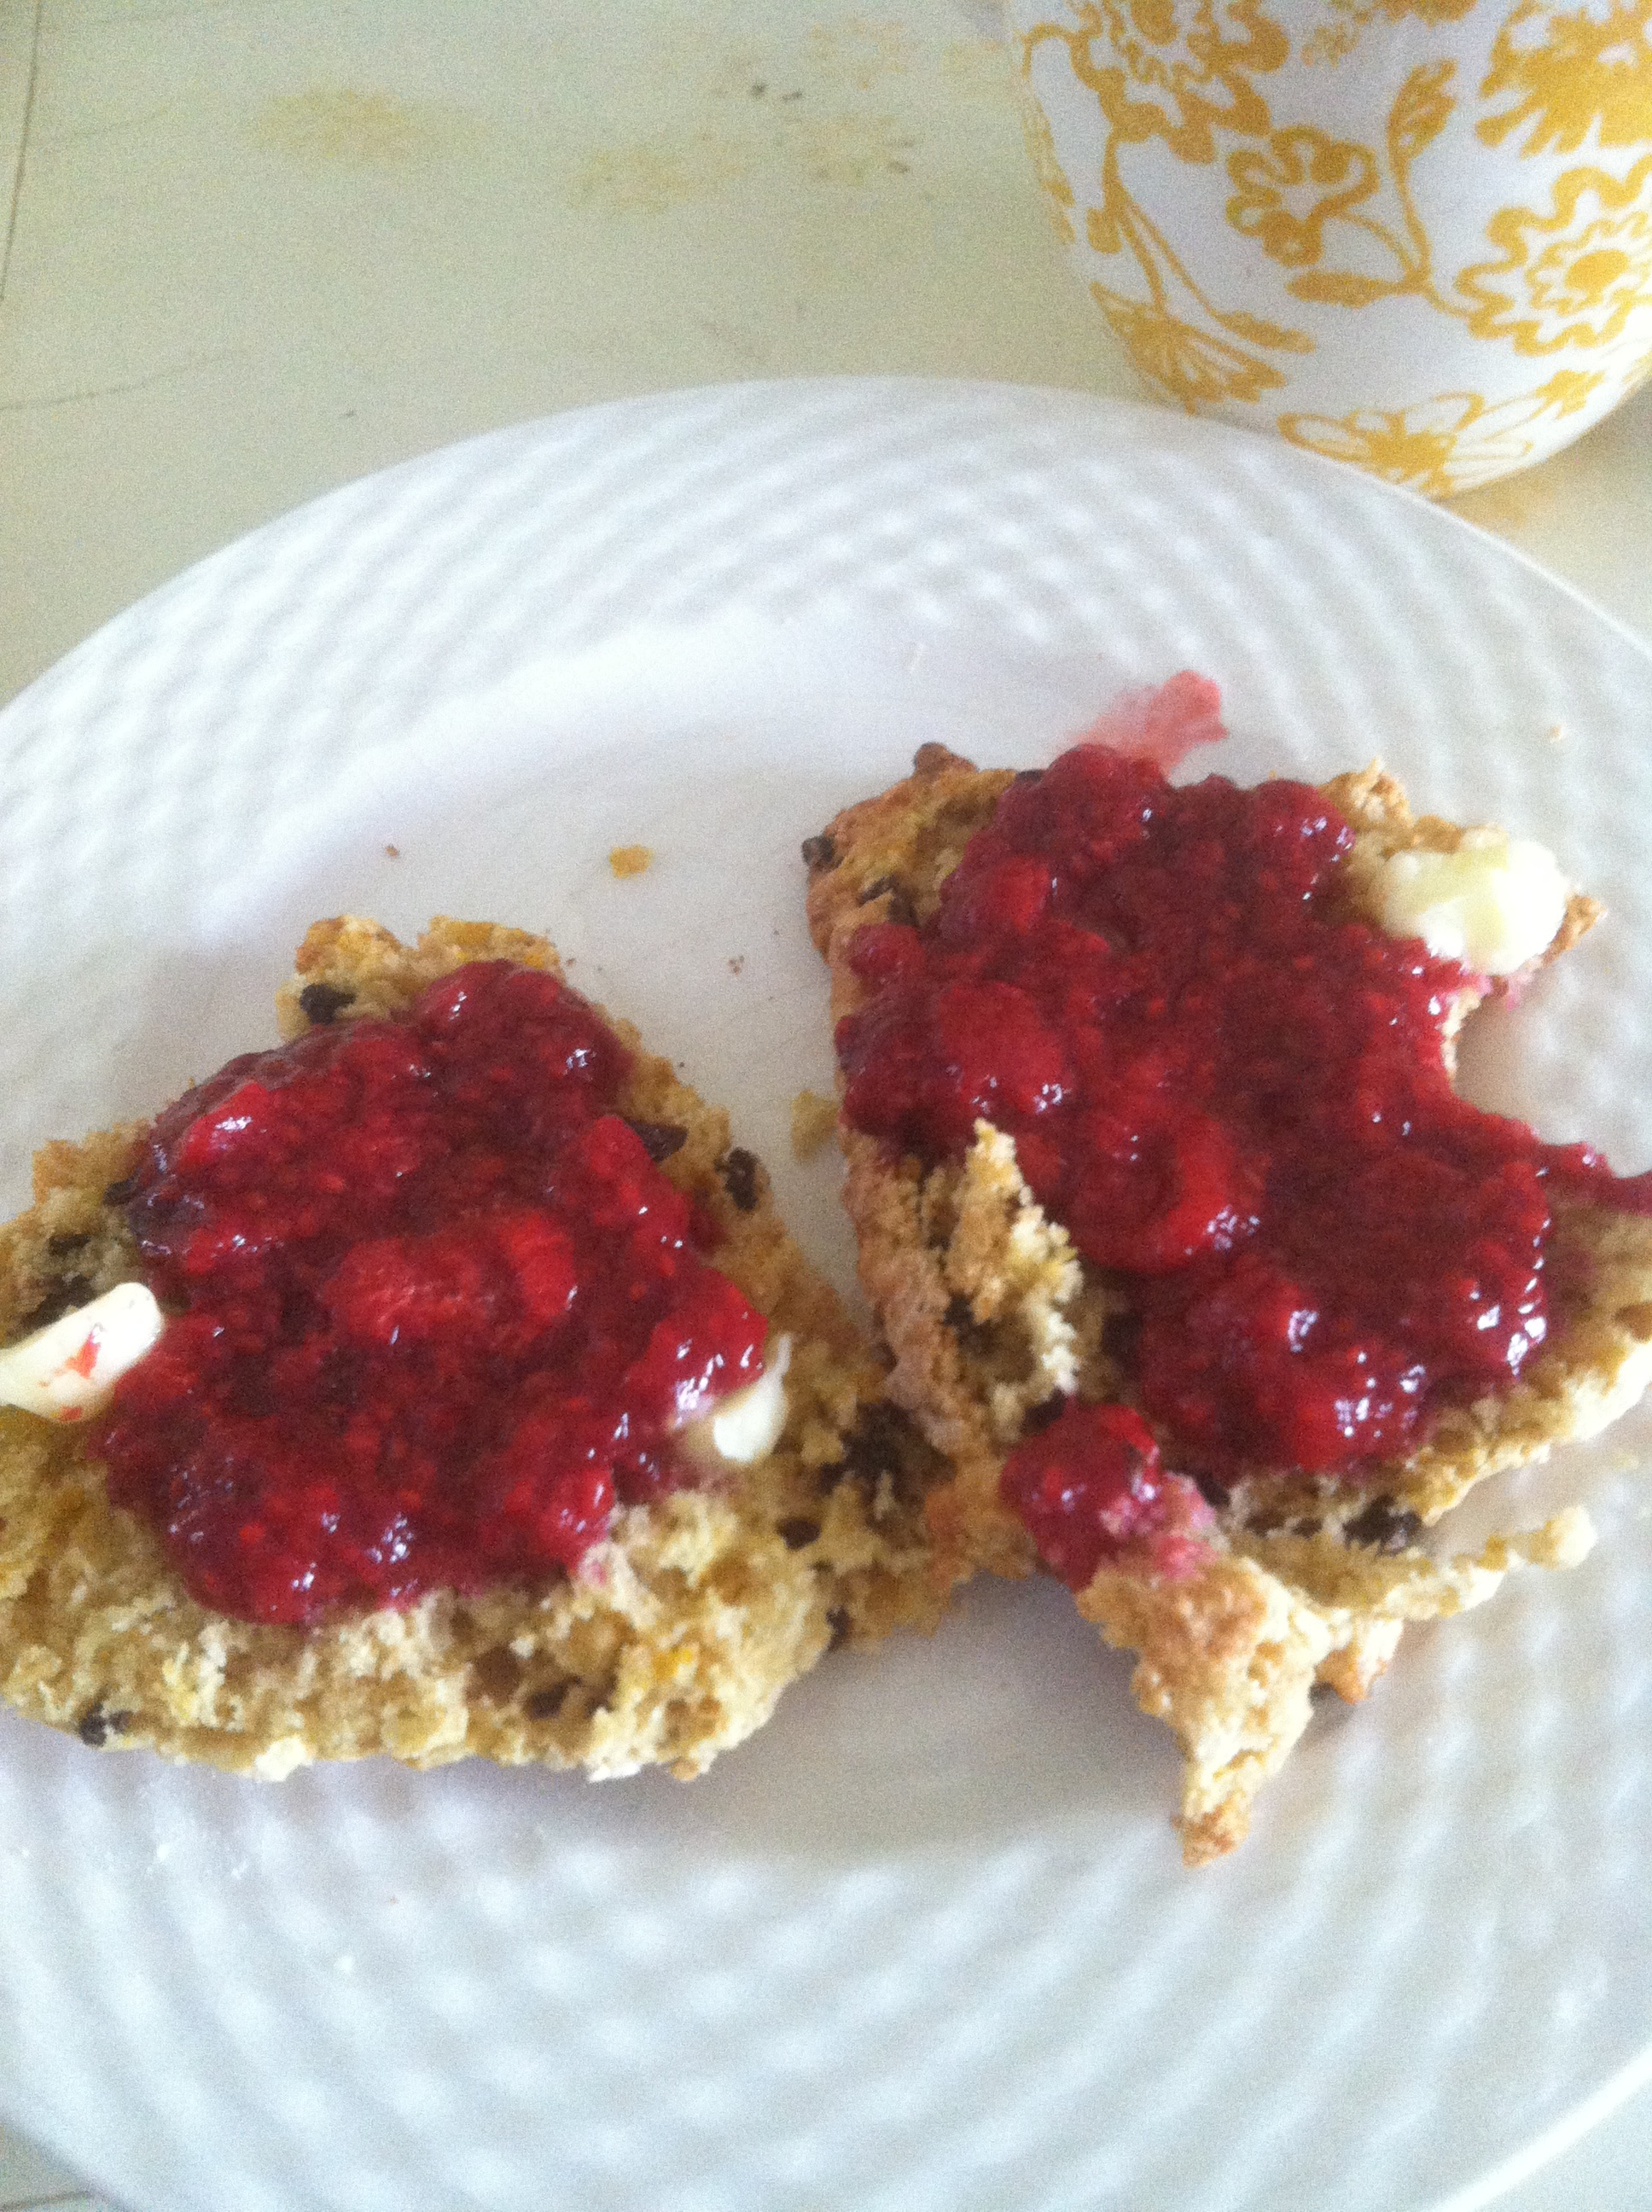 Orange-currant scones with warm raspberry jam